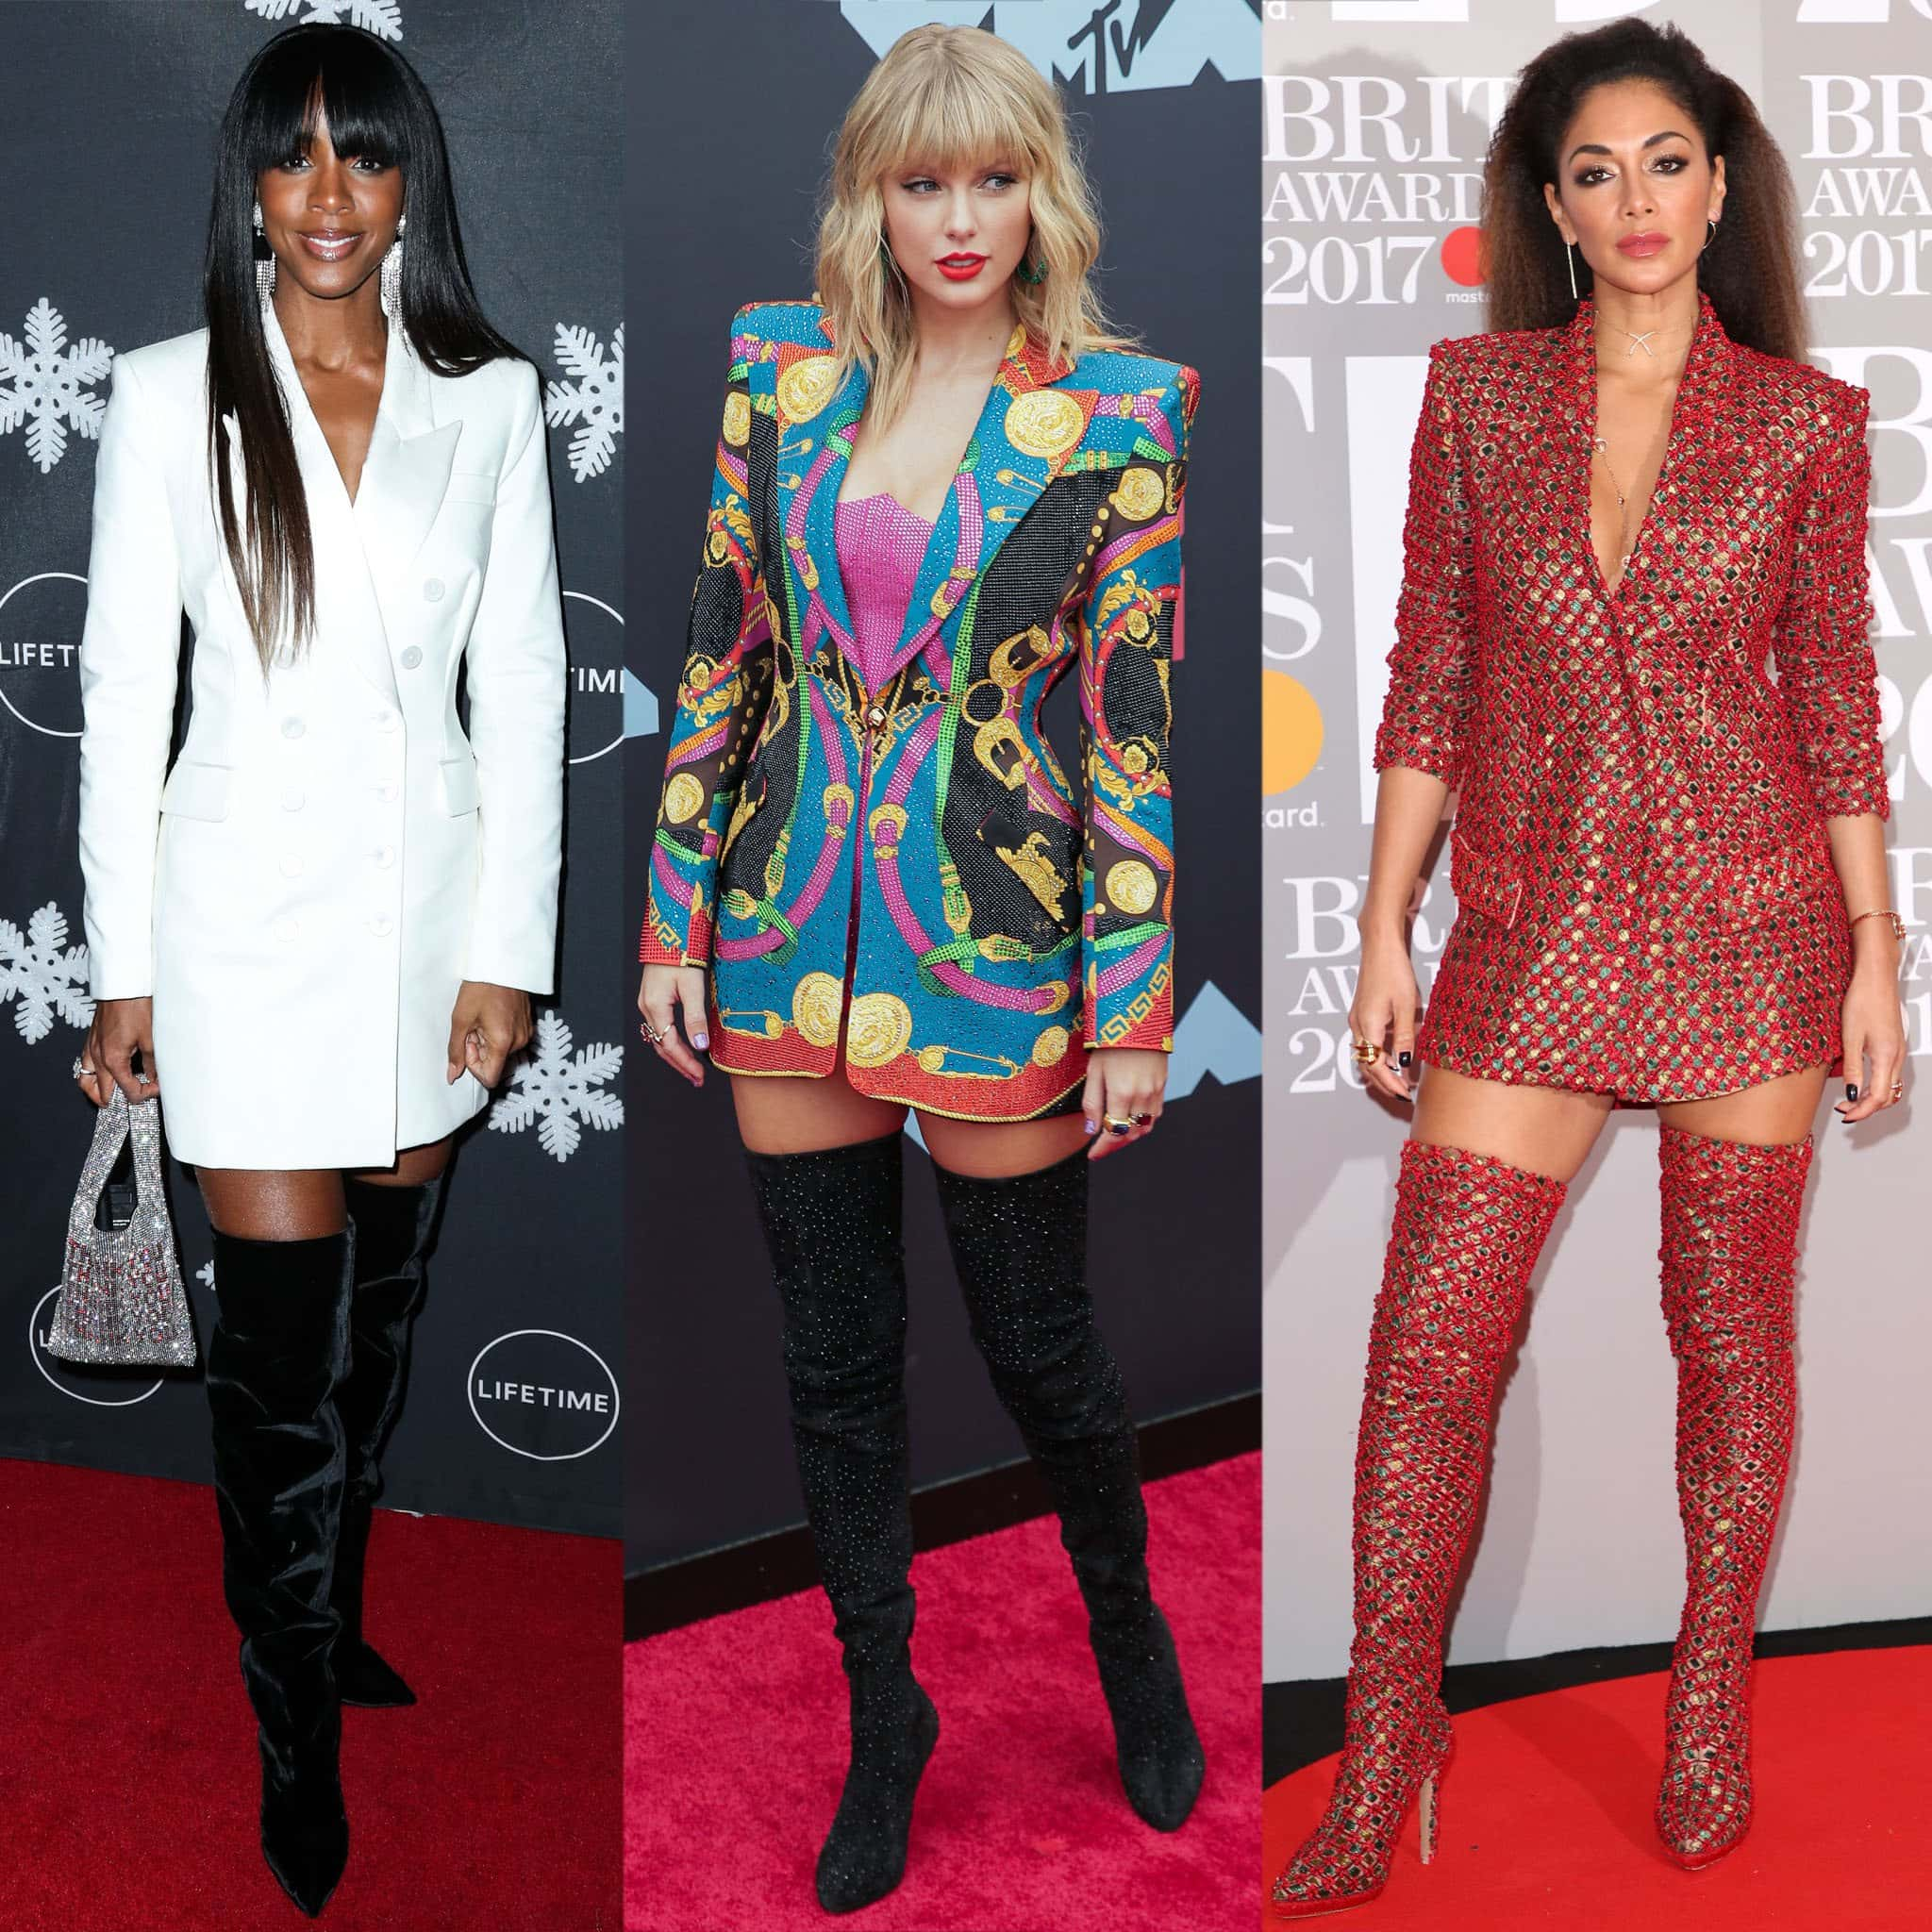 Kelly Rowland, Taylor Swift, and Nicole Scherzinger look hot in blazer dresses with knee and thigh-high boots